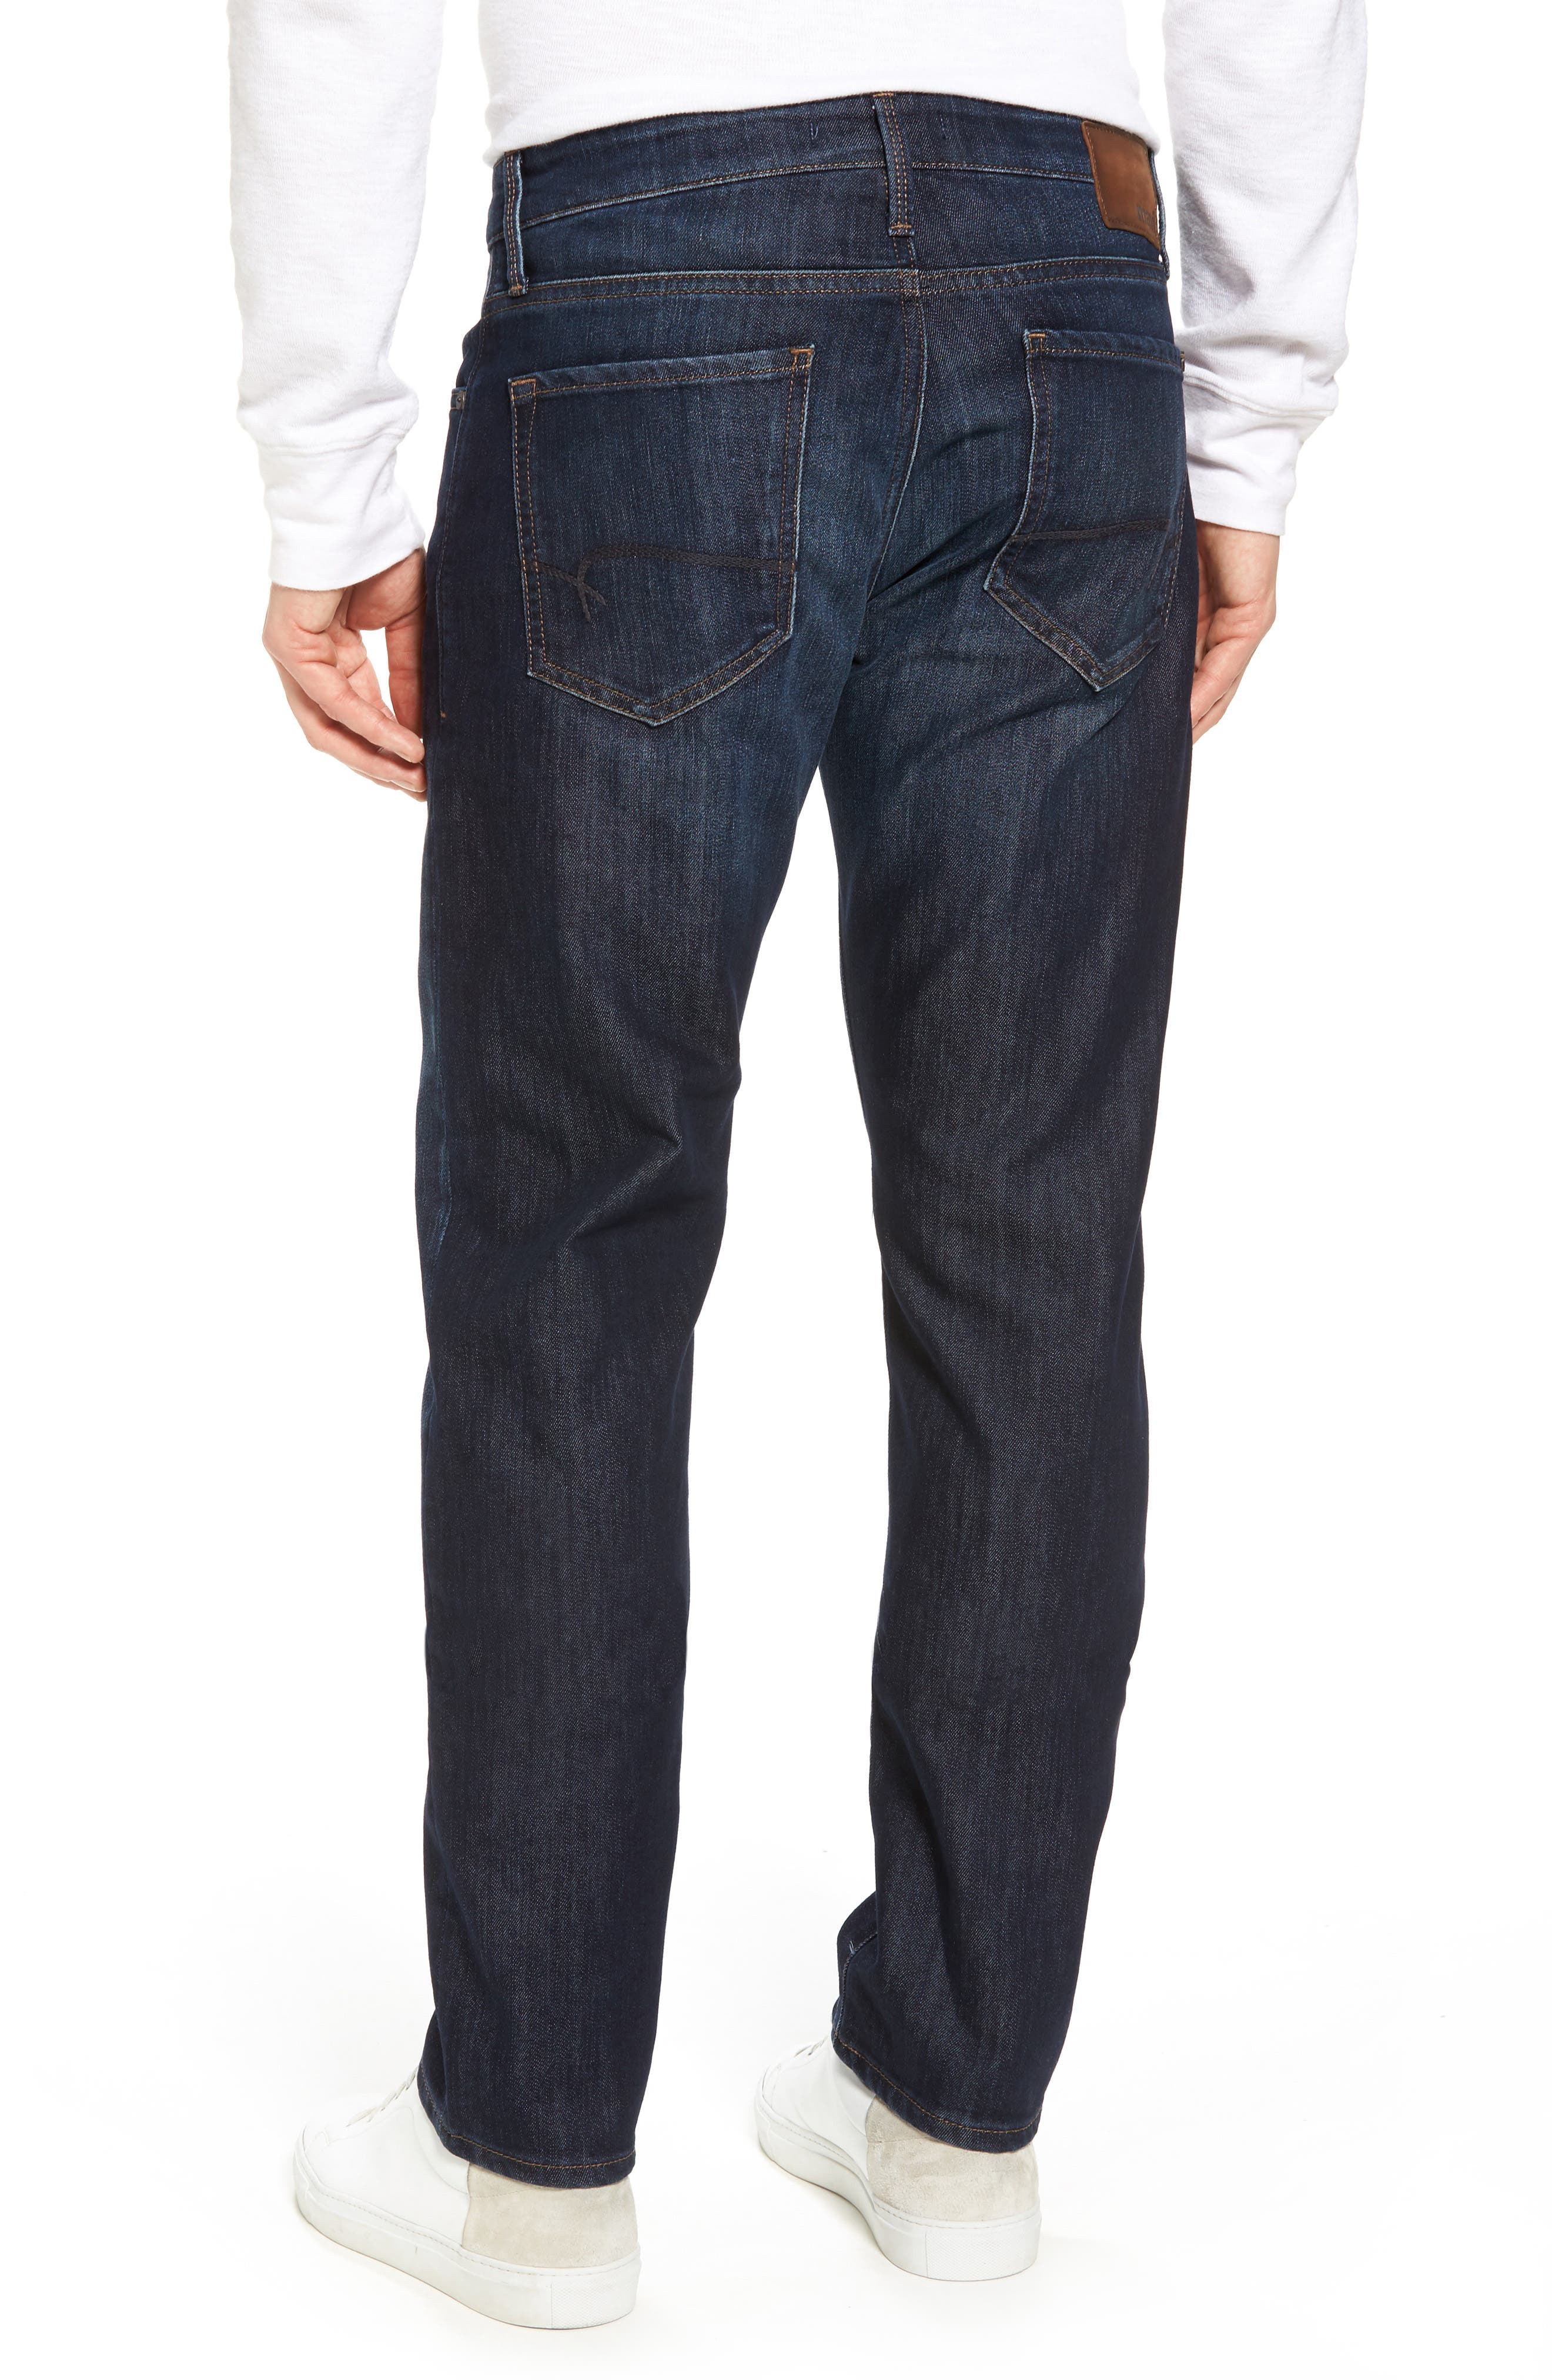 Zach Straight Leg Jeans,                             Alternate thumbnail 2, color,                             Rinse Stanford